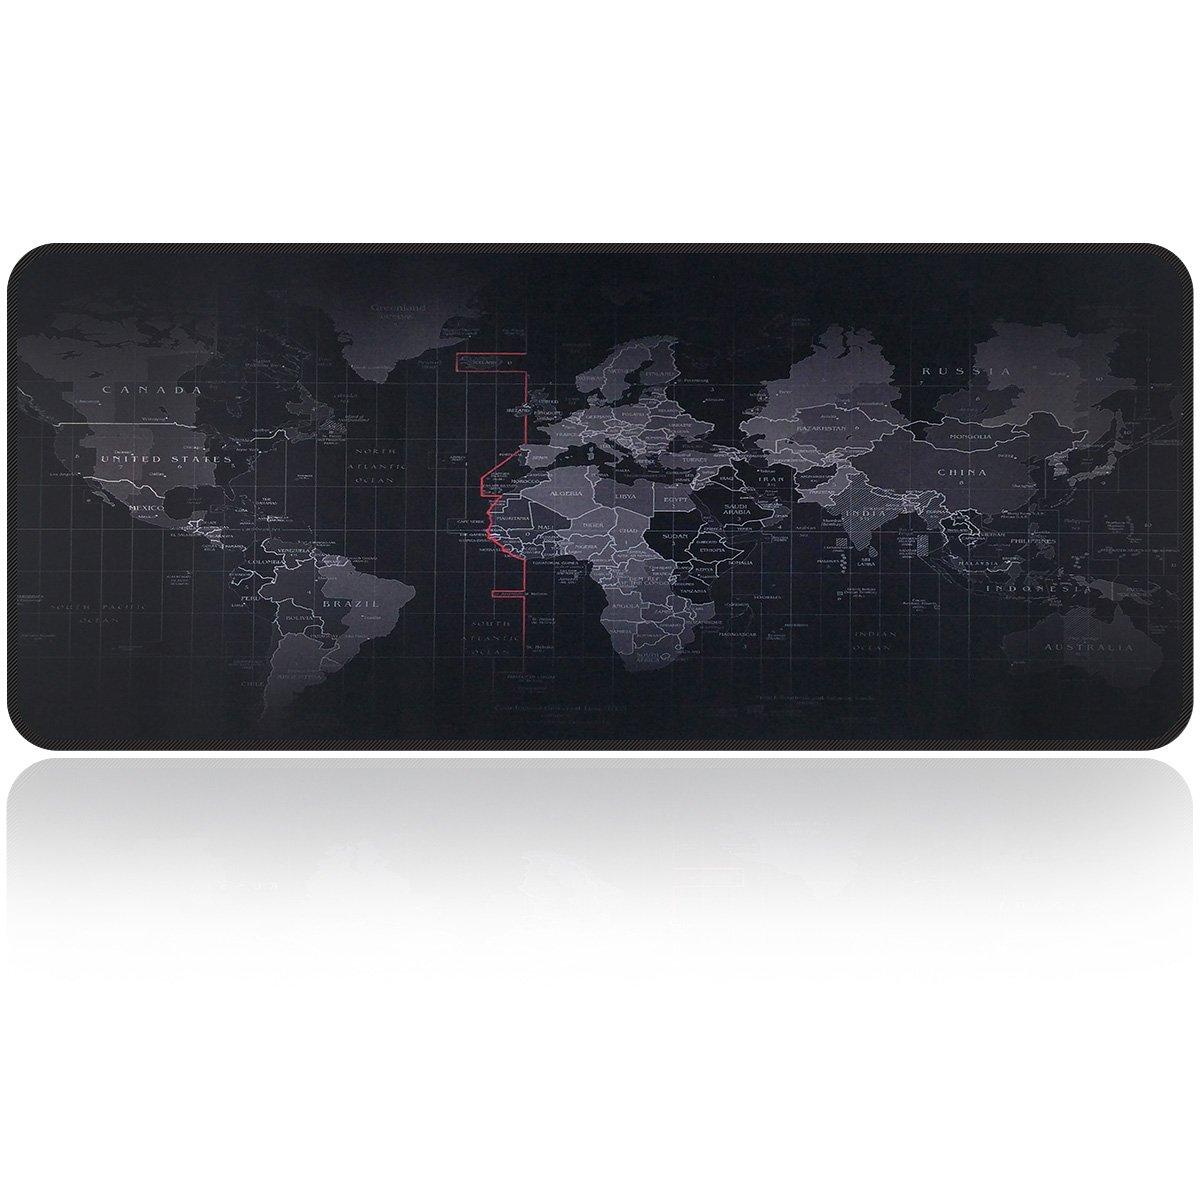 Large Gaming Mouse Map Pad With Nonslip Base|Extended XXL Size, Heavy|Thick, Comfy, Waterproof & Foldable Mat For Desktop, Laptop, Keyboard, Consoles & More|Enjoy Precise & Smooth Operating Experience